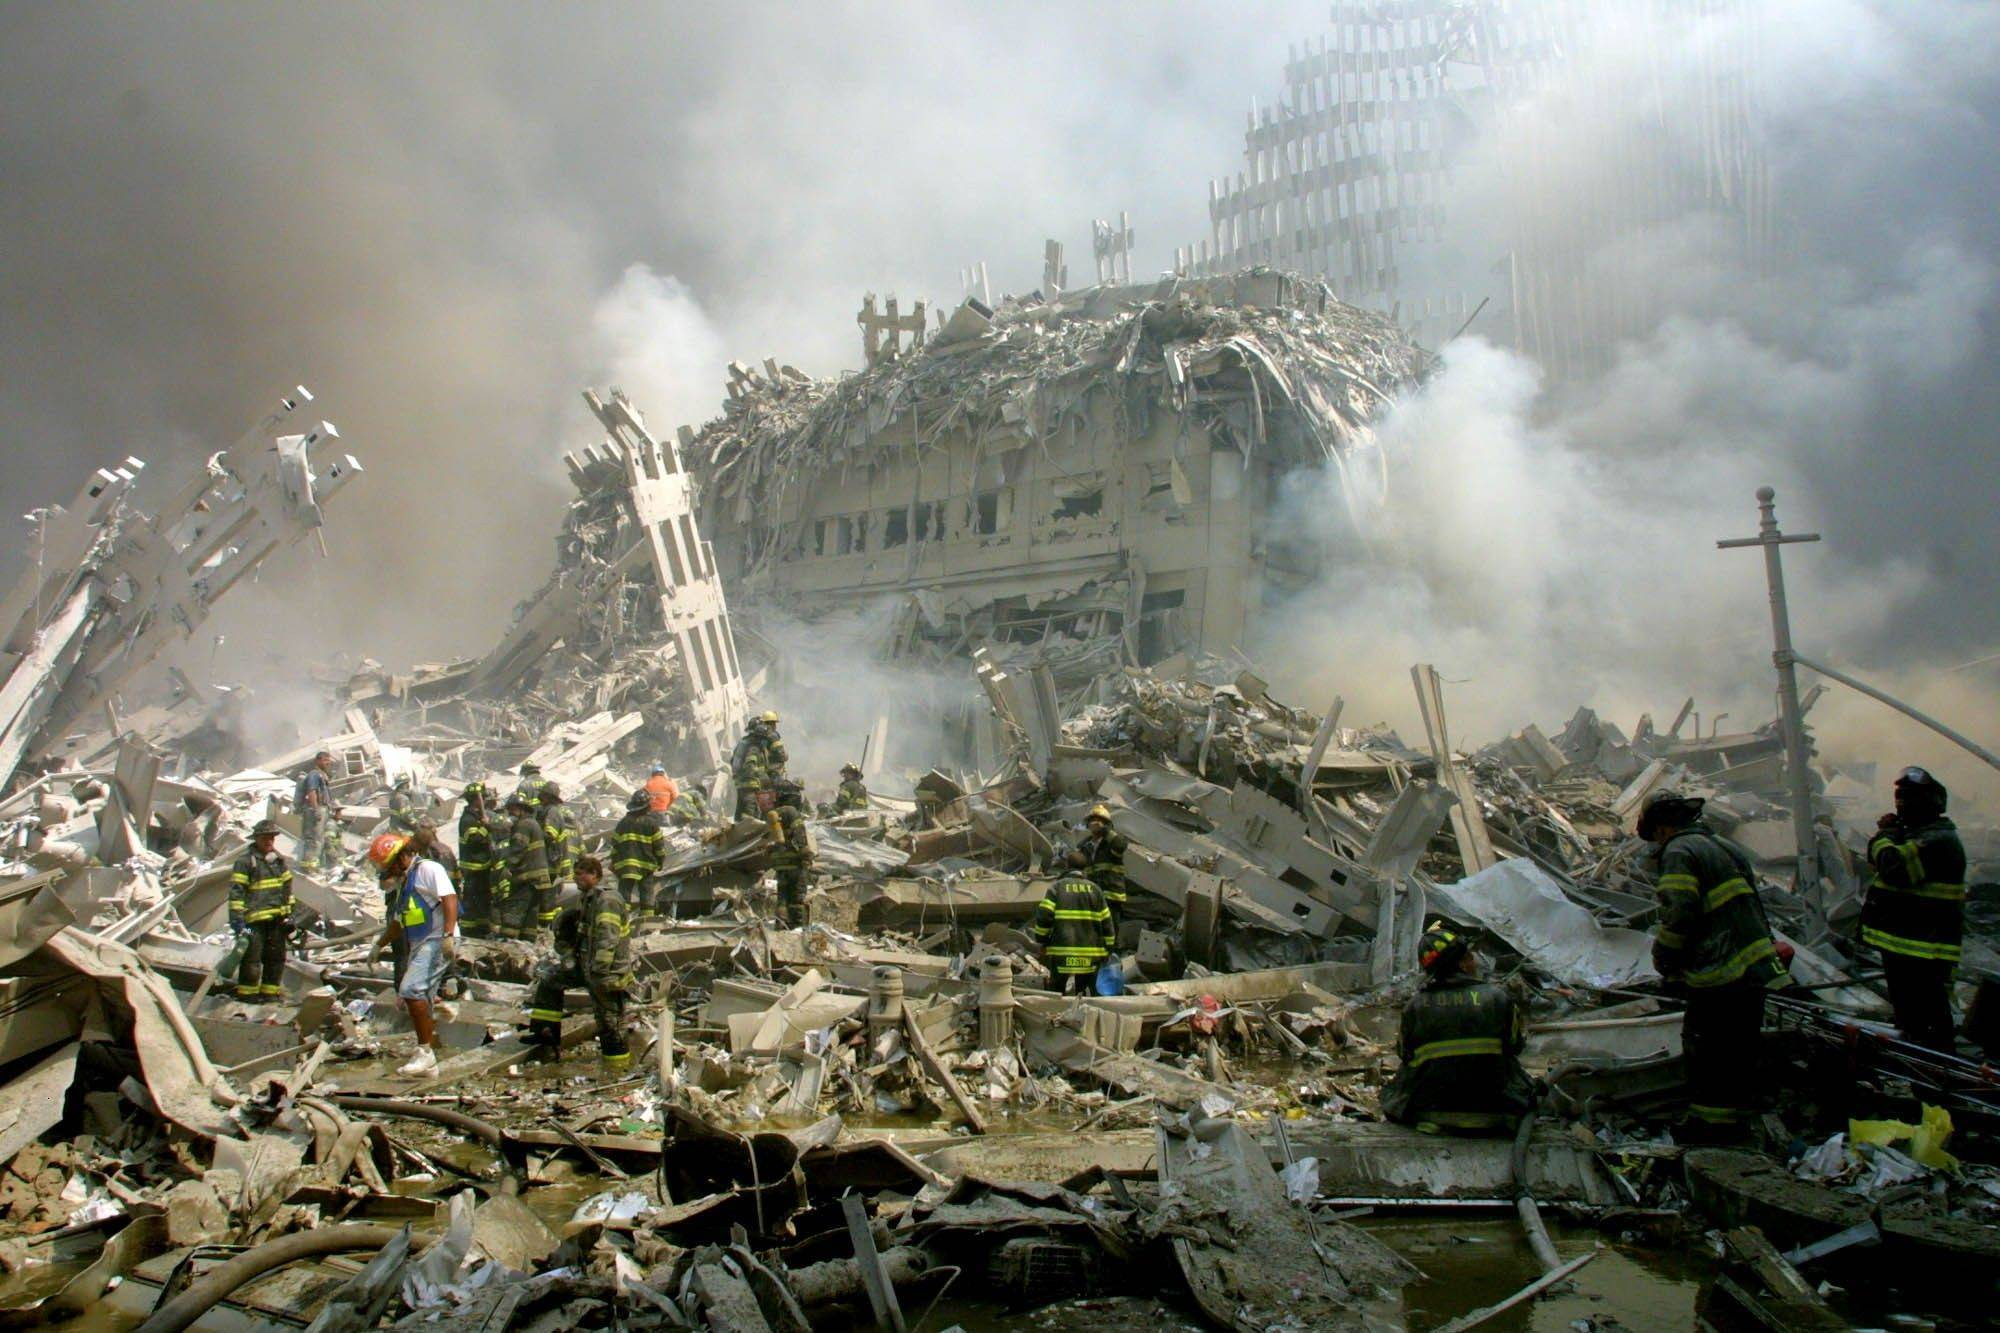 Firefighters walk through the rubble of the collapsed World Trade Center buildings after terrorists crashed two airliners into the towers.